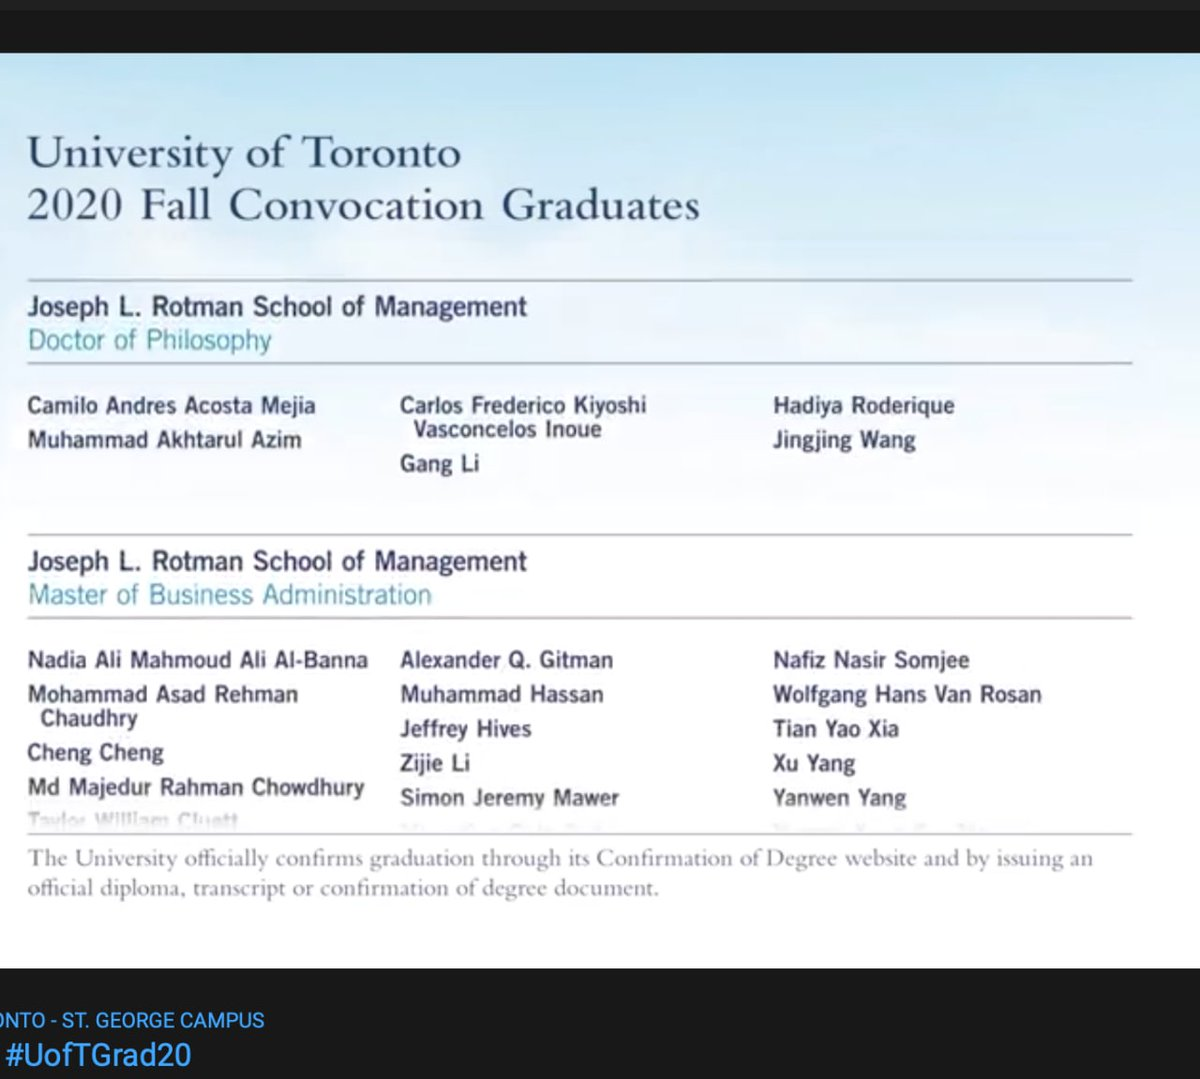 Replying to @Cacostam: Finally graduating from @rotmanschool @UofT. Hopefully my diploma makes it all the way to Colombia